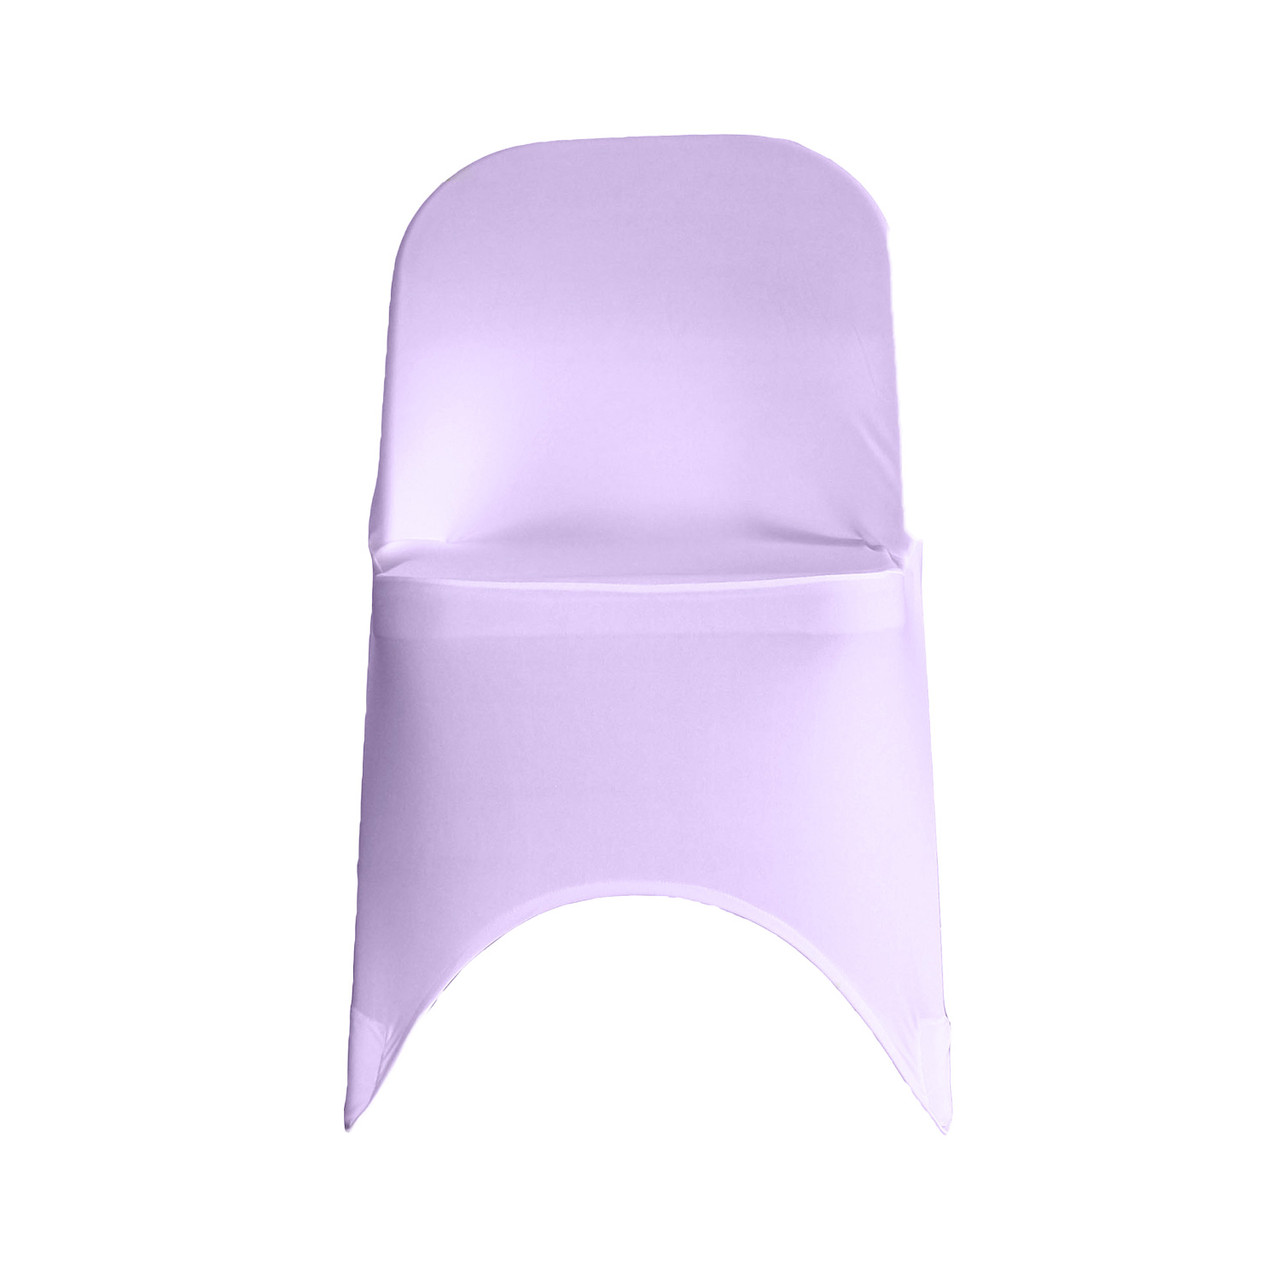 Groovy Stretch Spandex Folding Chair Cover Lavender Gmtry Best Dining Table And Chair Ideas Images Gmtryco